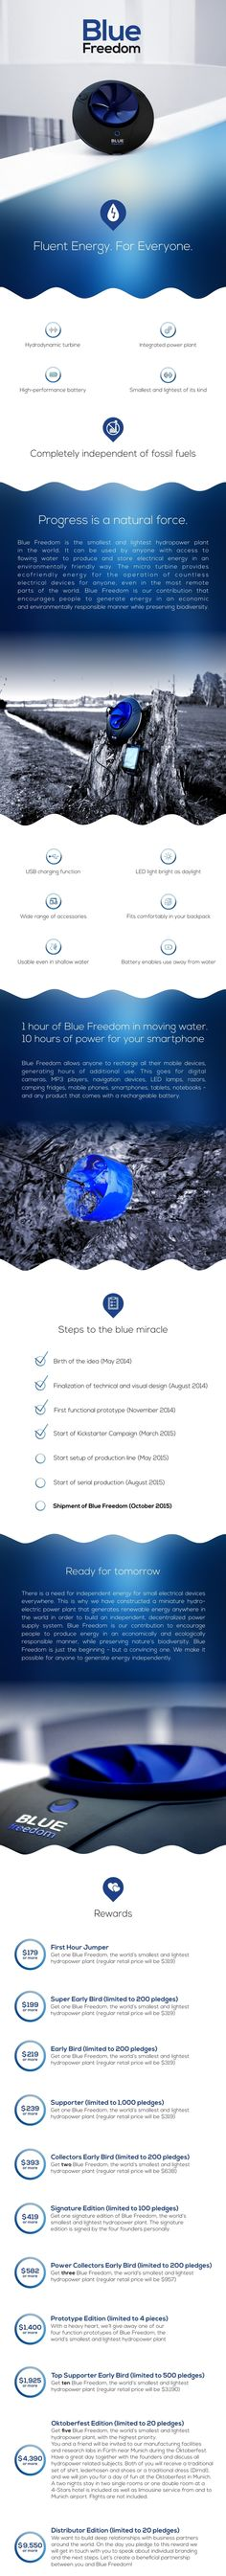 Blue Freedom | The World's Smallest Hydropower Plant by Blue Freedom LLC — Kickstarter